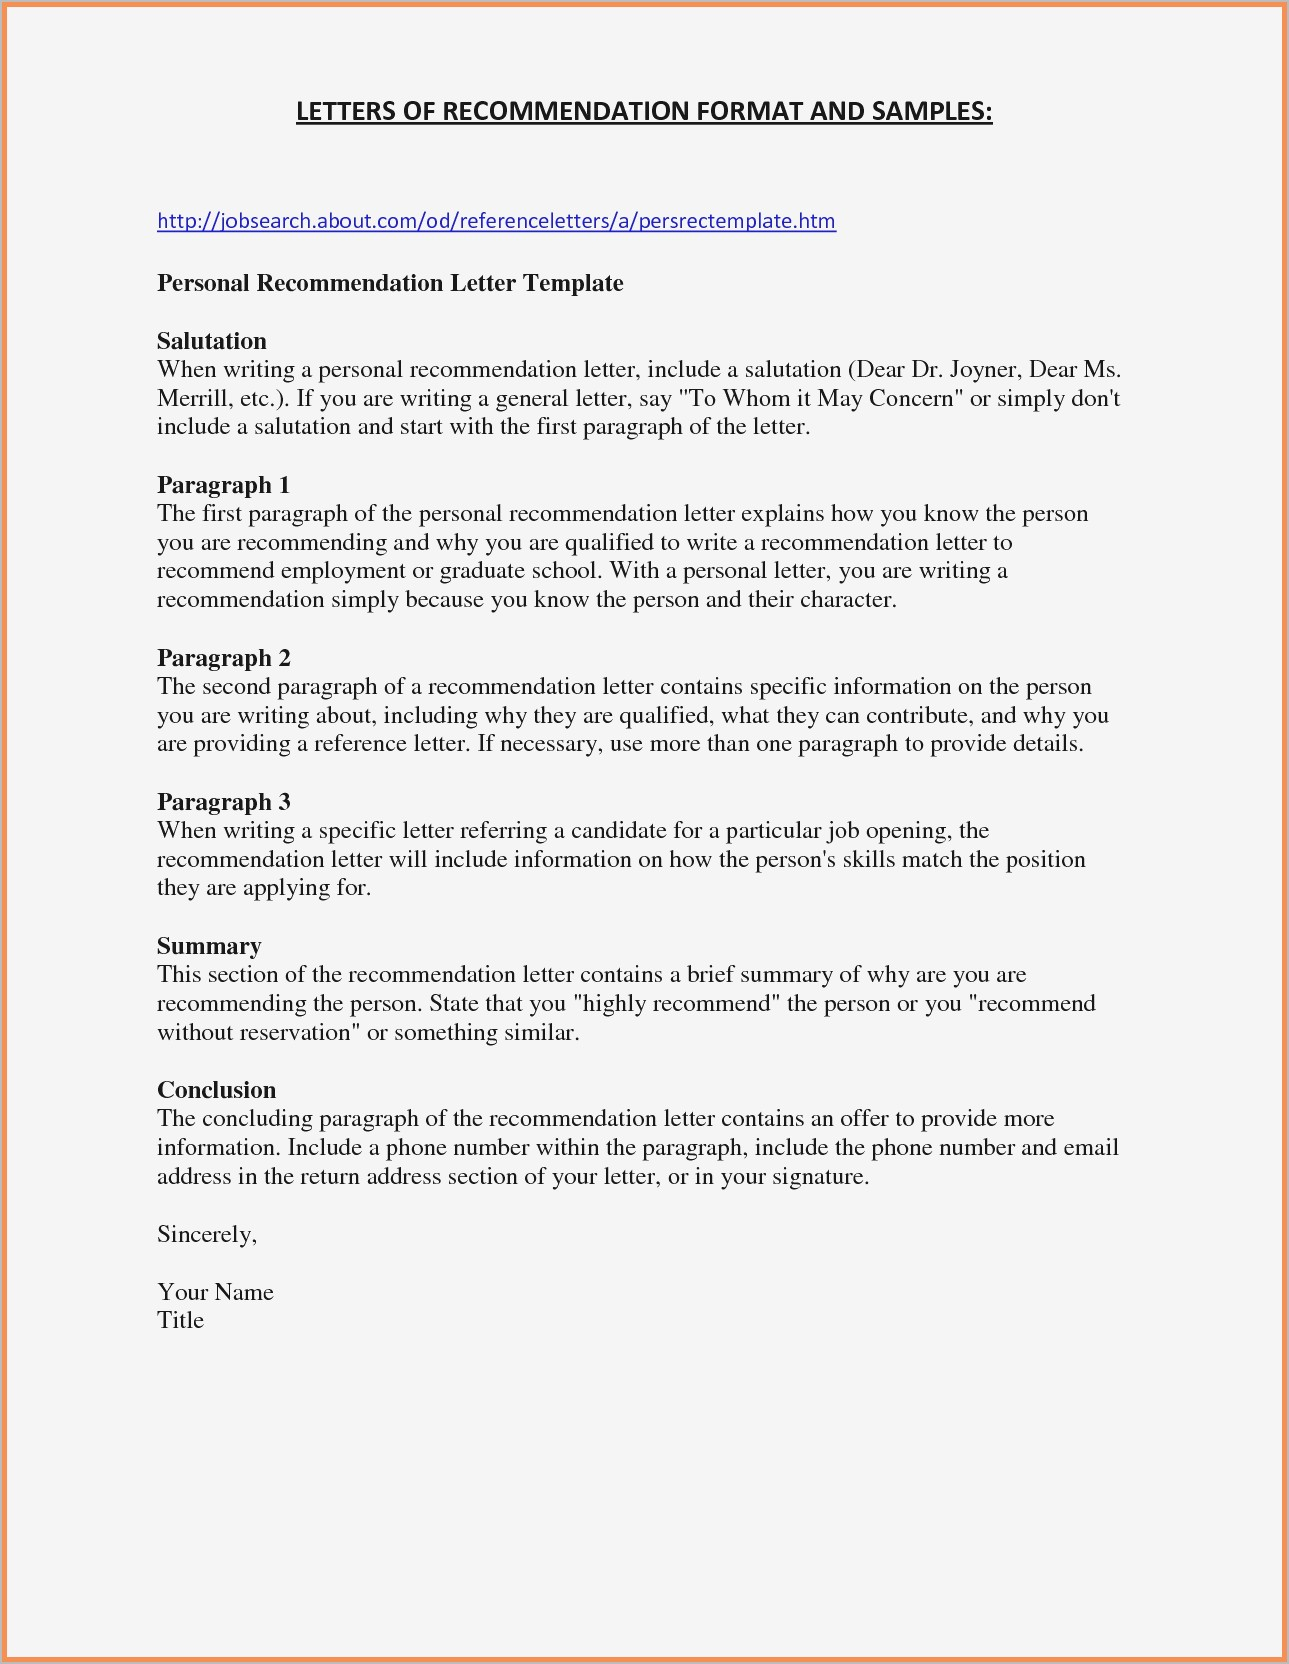 Letter to Home Seller From Buyer Template - Free Letter Re Mendation Template Pdf format